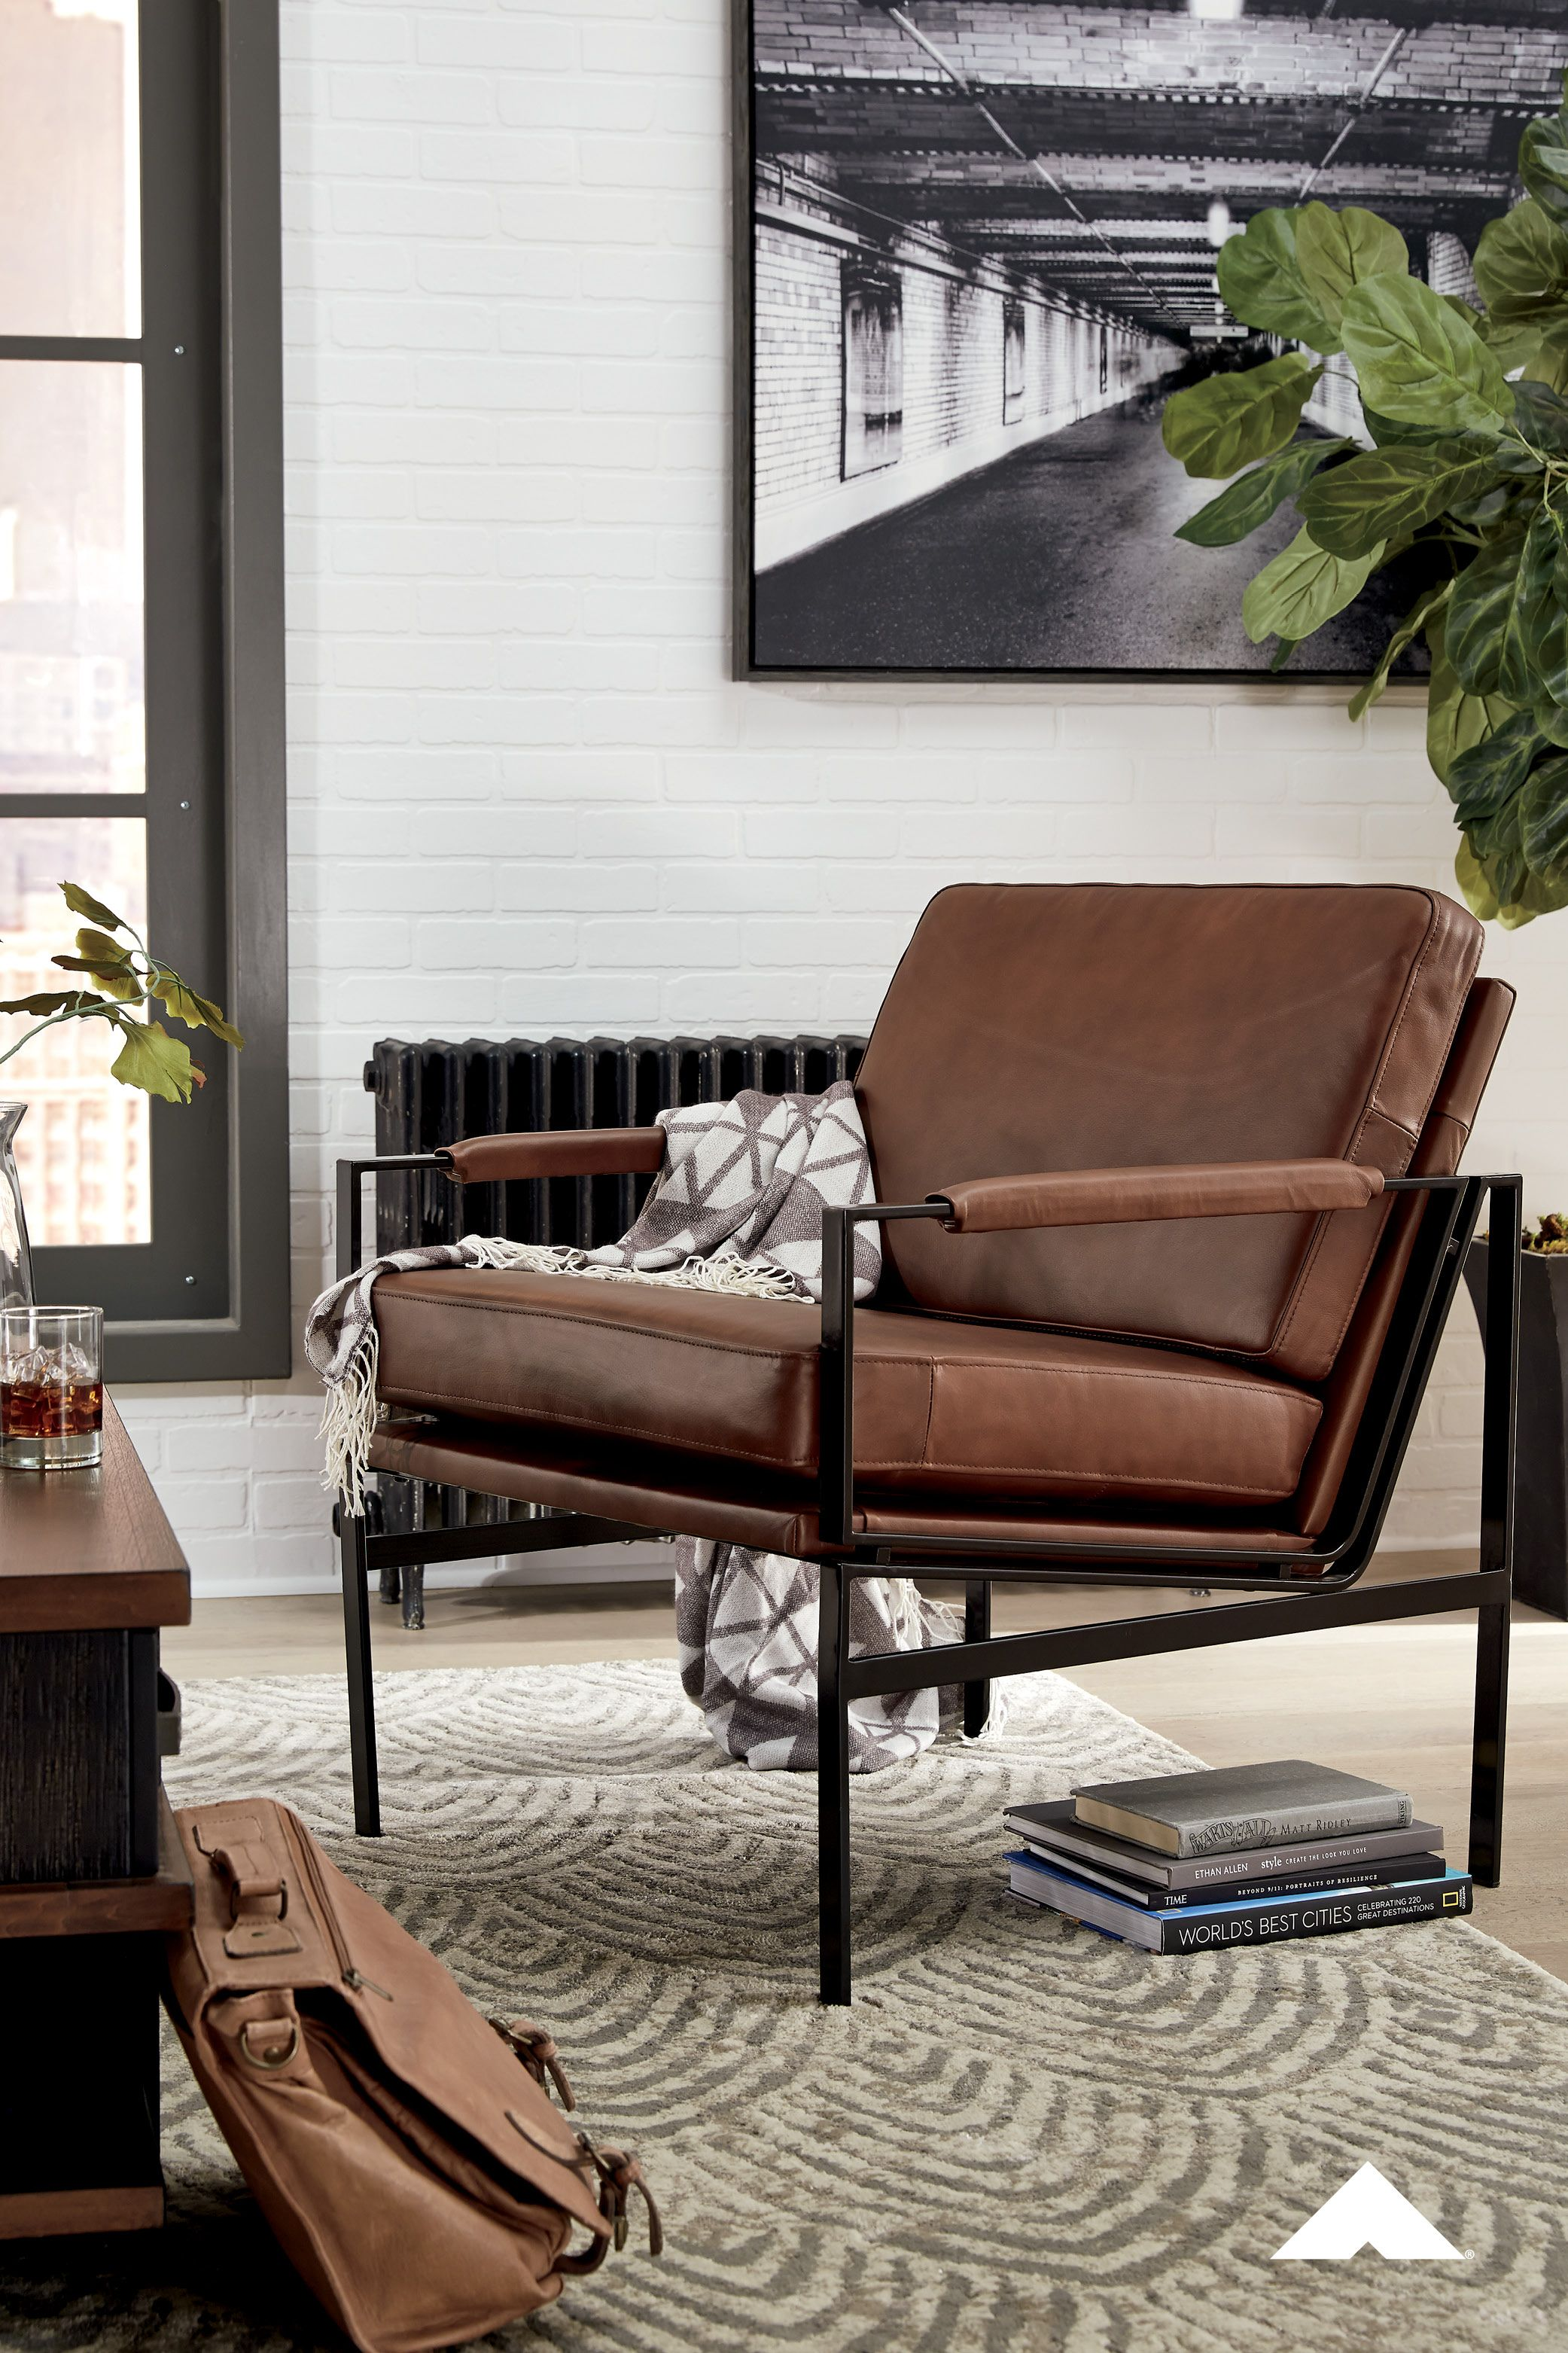 Puckman Brown Silver Finish Accent Chair By Ashley Furniture With Its Ultra Modern Vibe And Ultra Indu In 2020 Ashley Furniture Industries Ashley Furniture Furniture